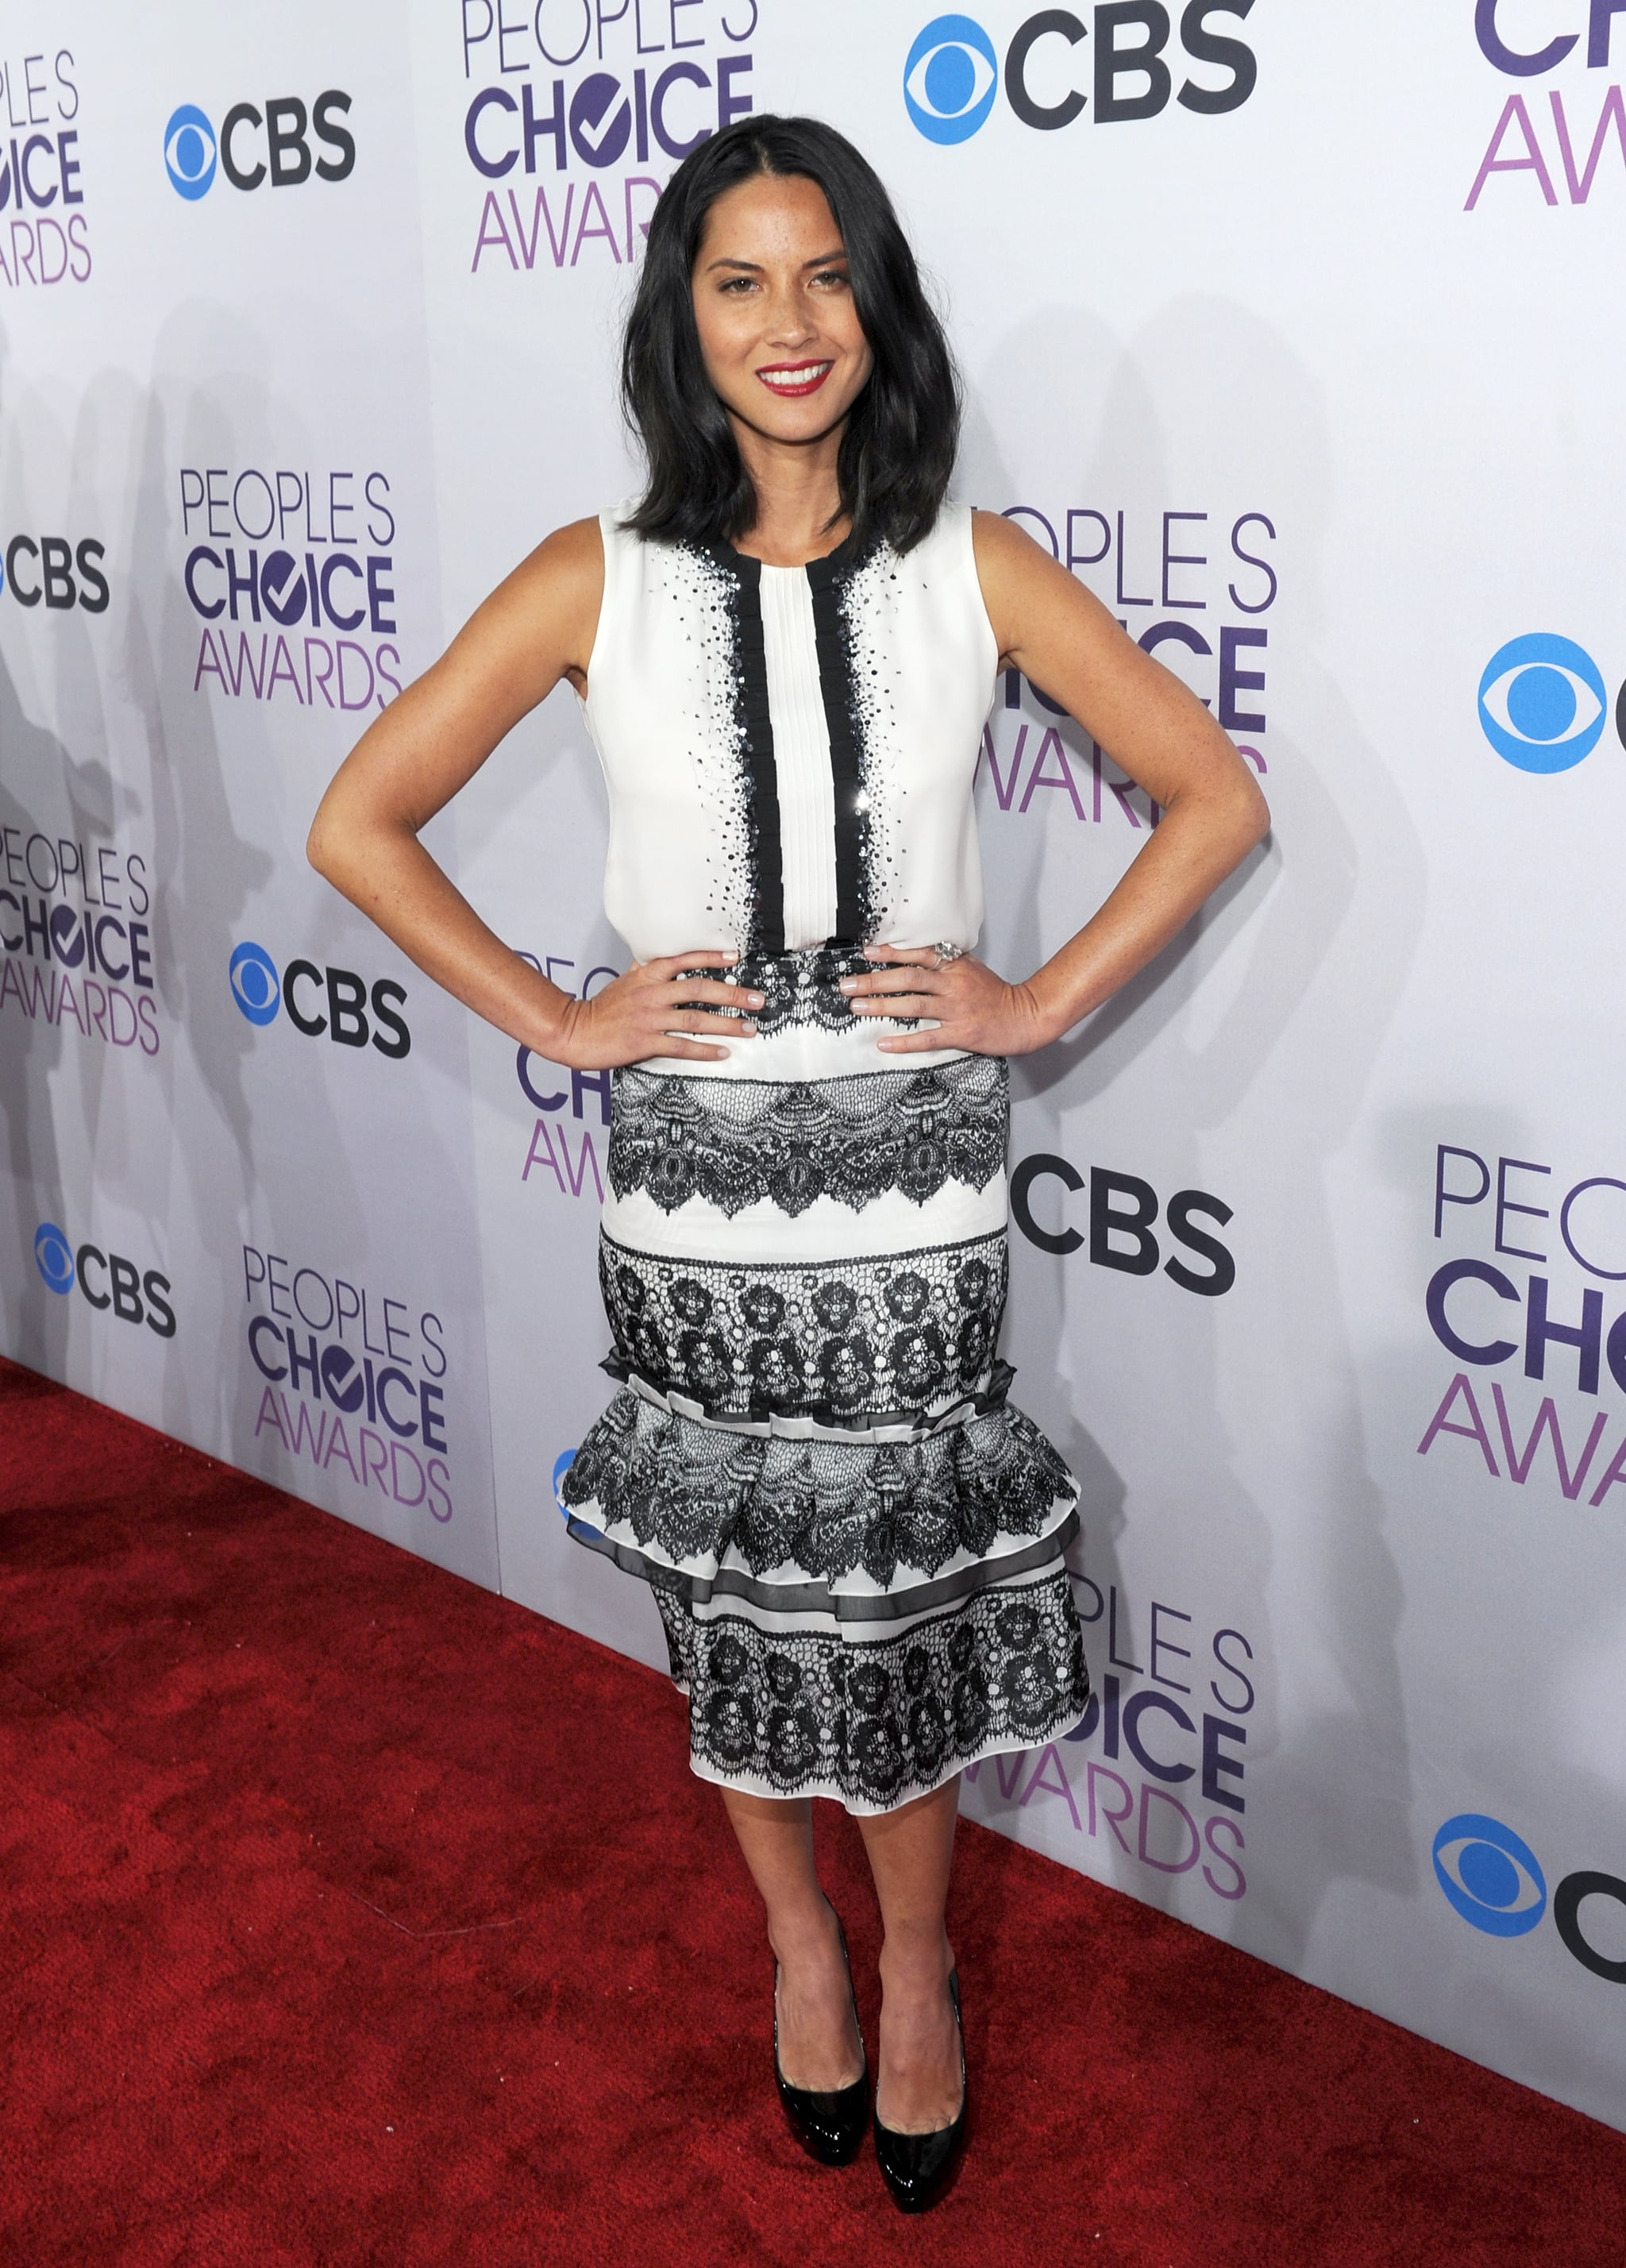 Olivia Munn hit the red carpet at the People's Choice Awards in LA.